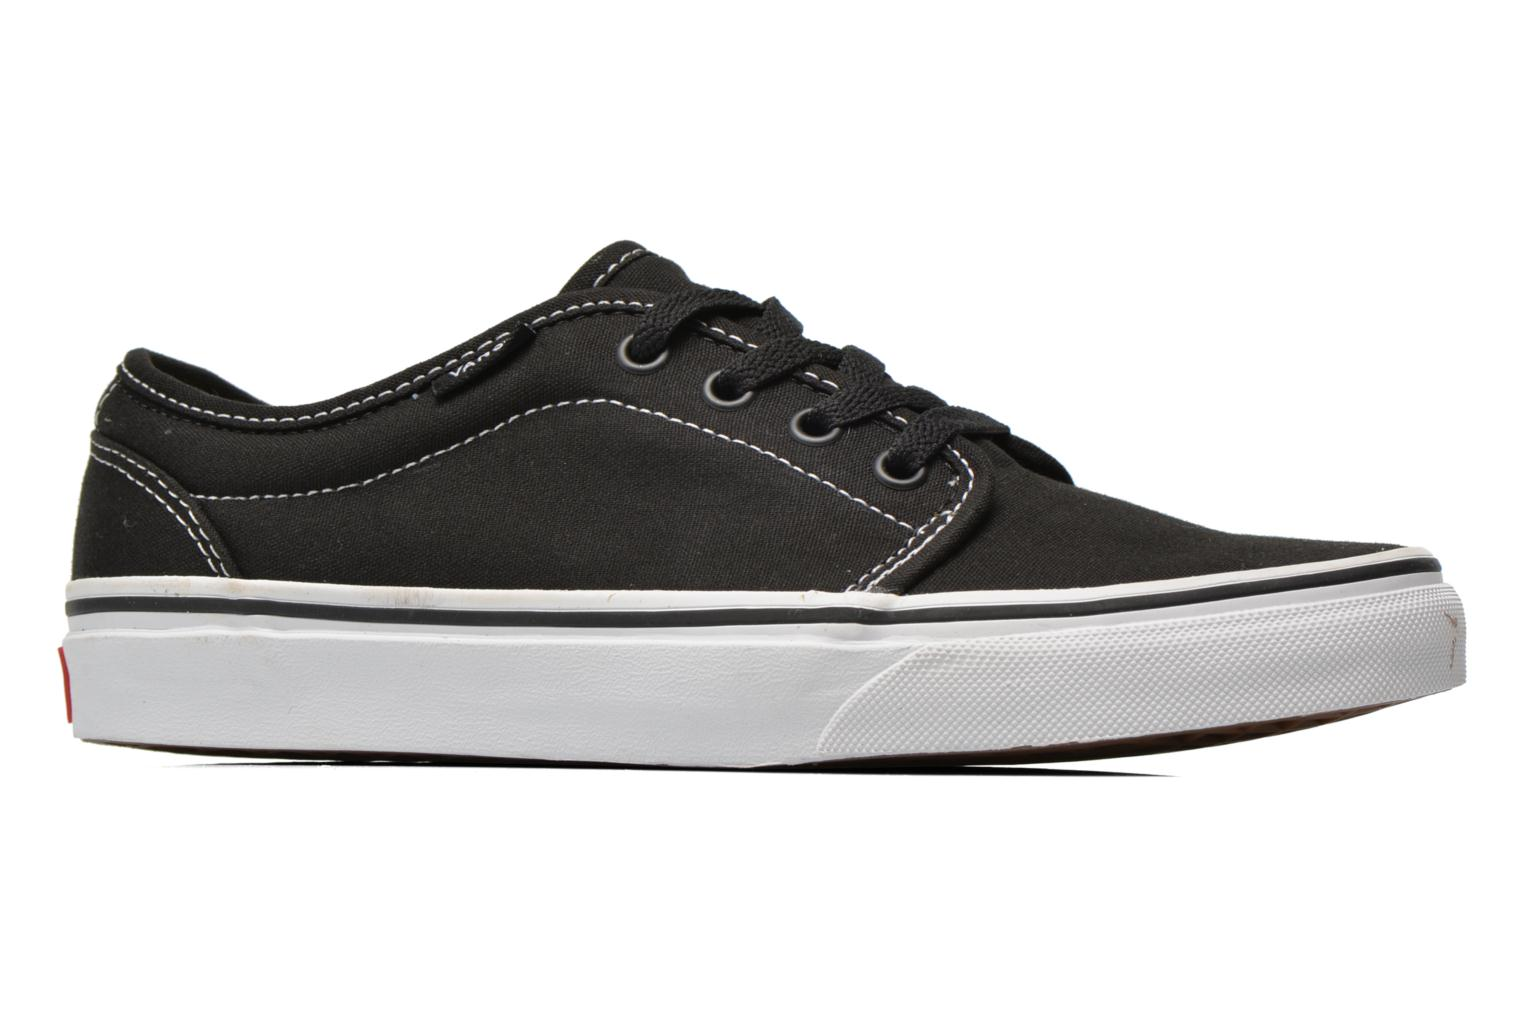 106 Vulcanized E Blackwhite